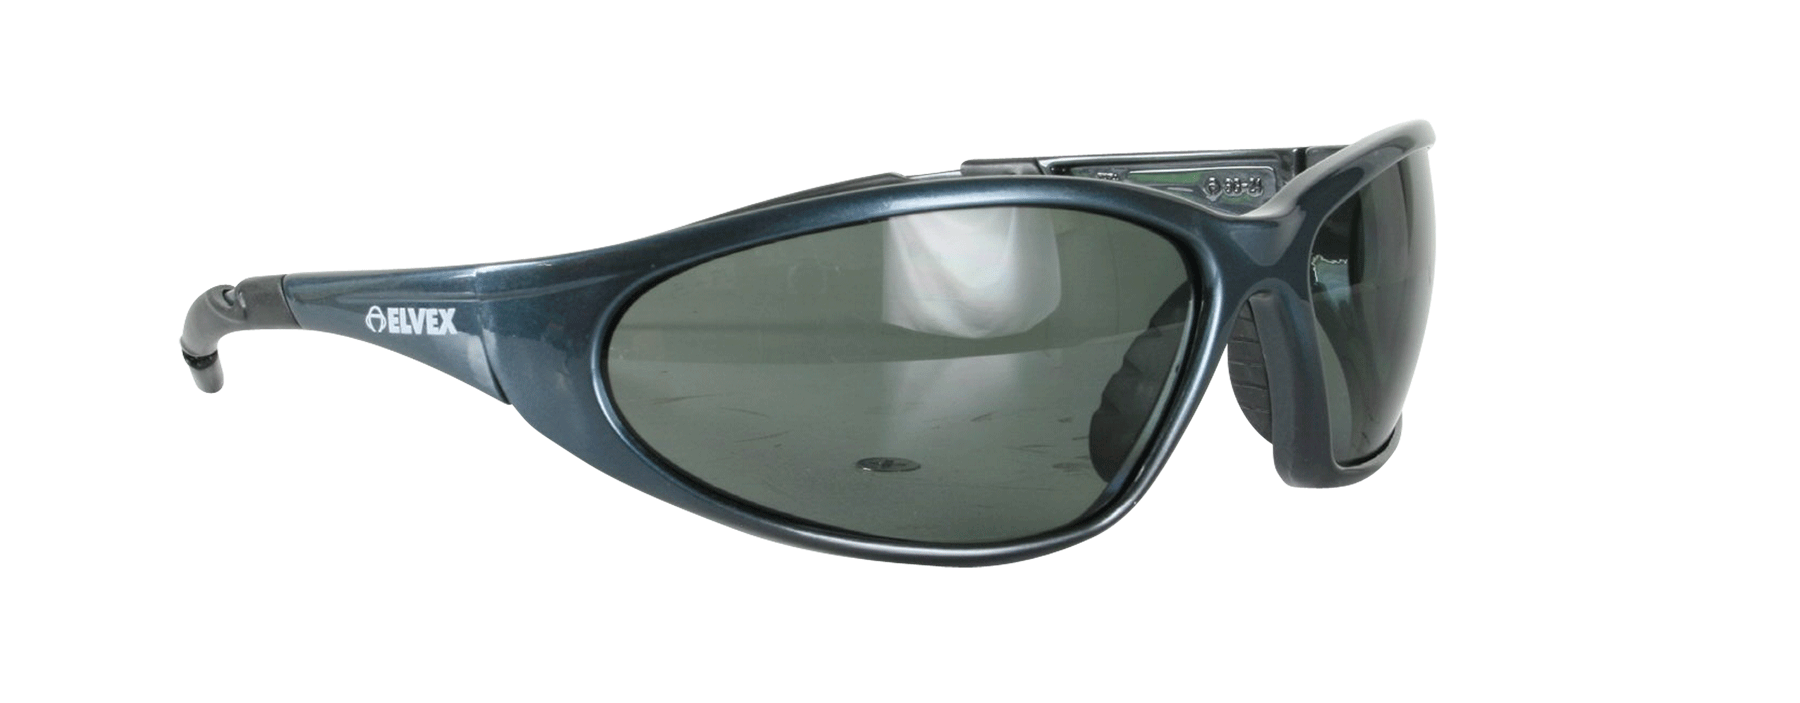 Elvex Corp RSG-24PL XTS Safety Glasses Clam Polarized